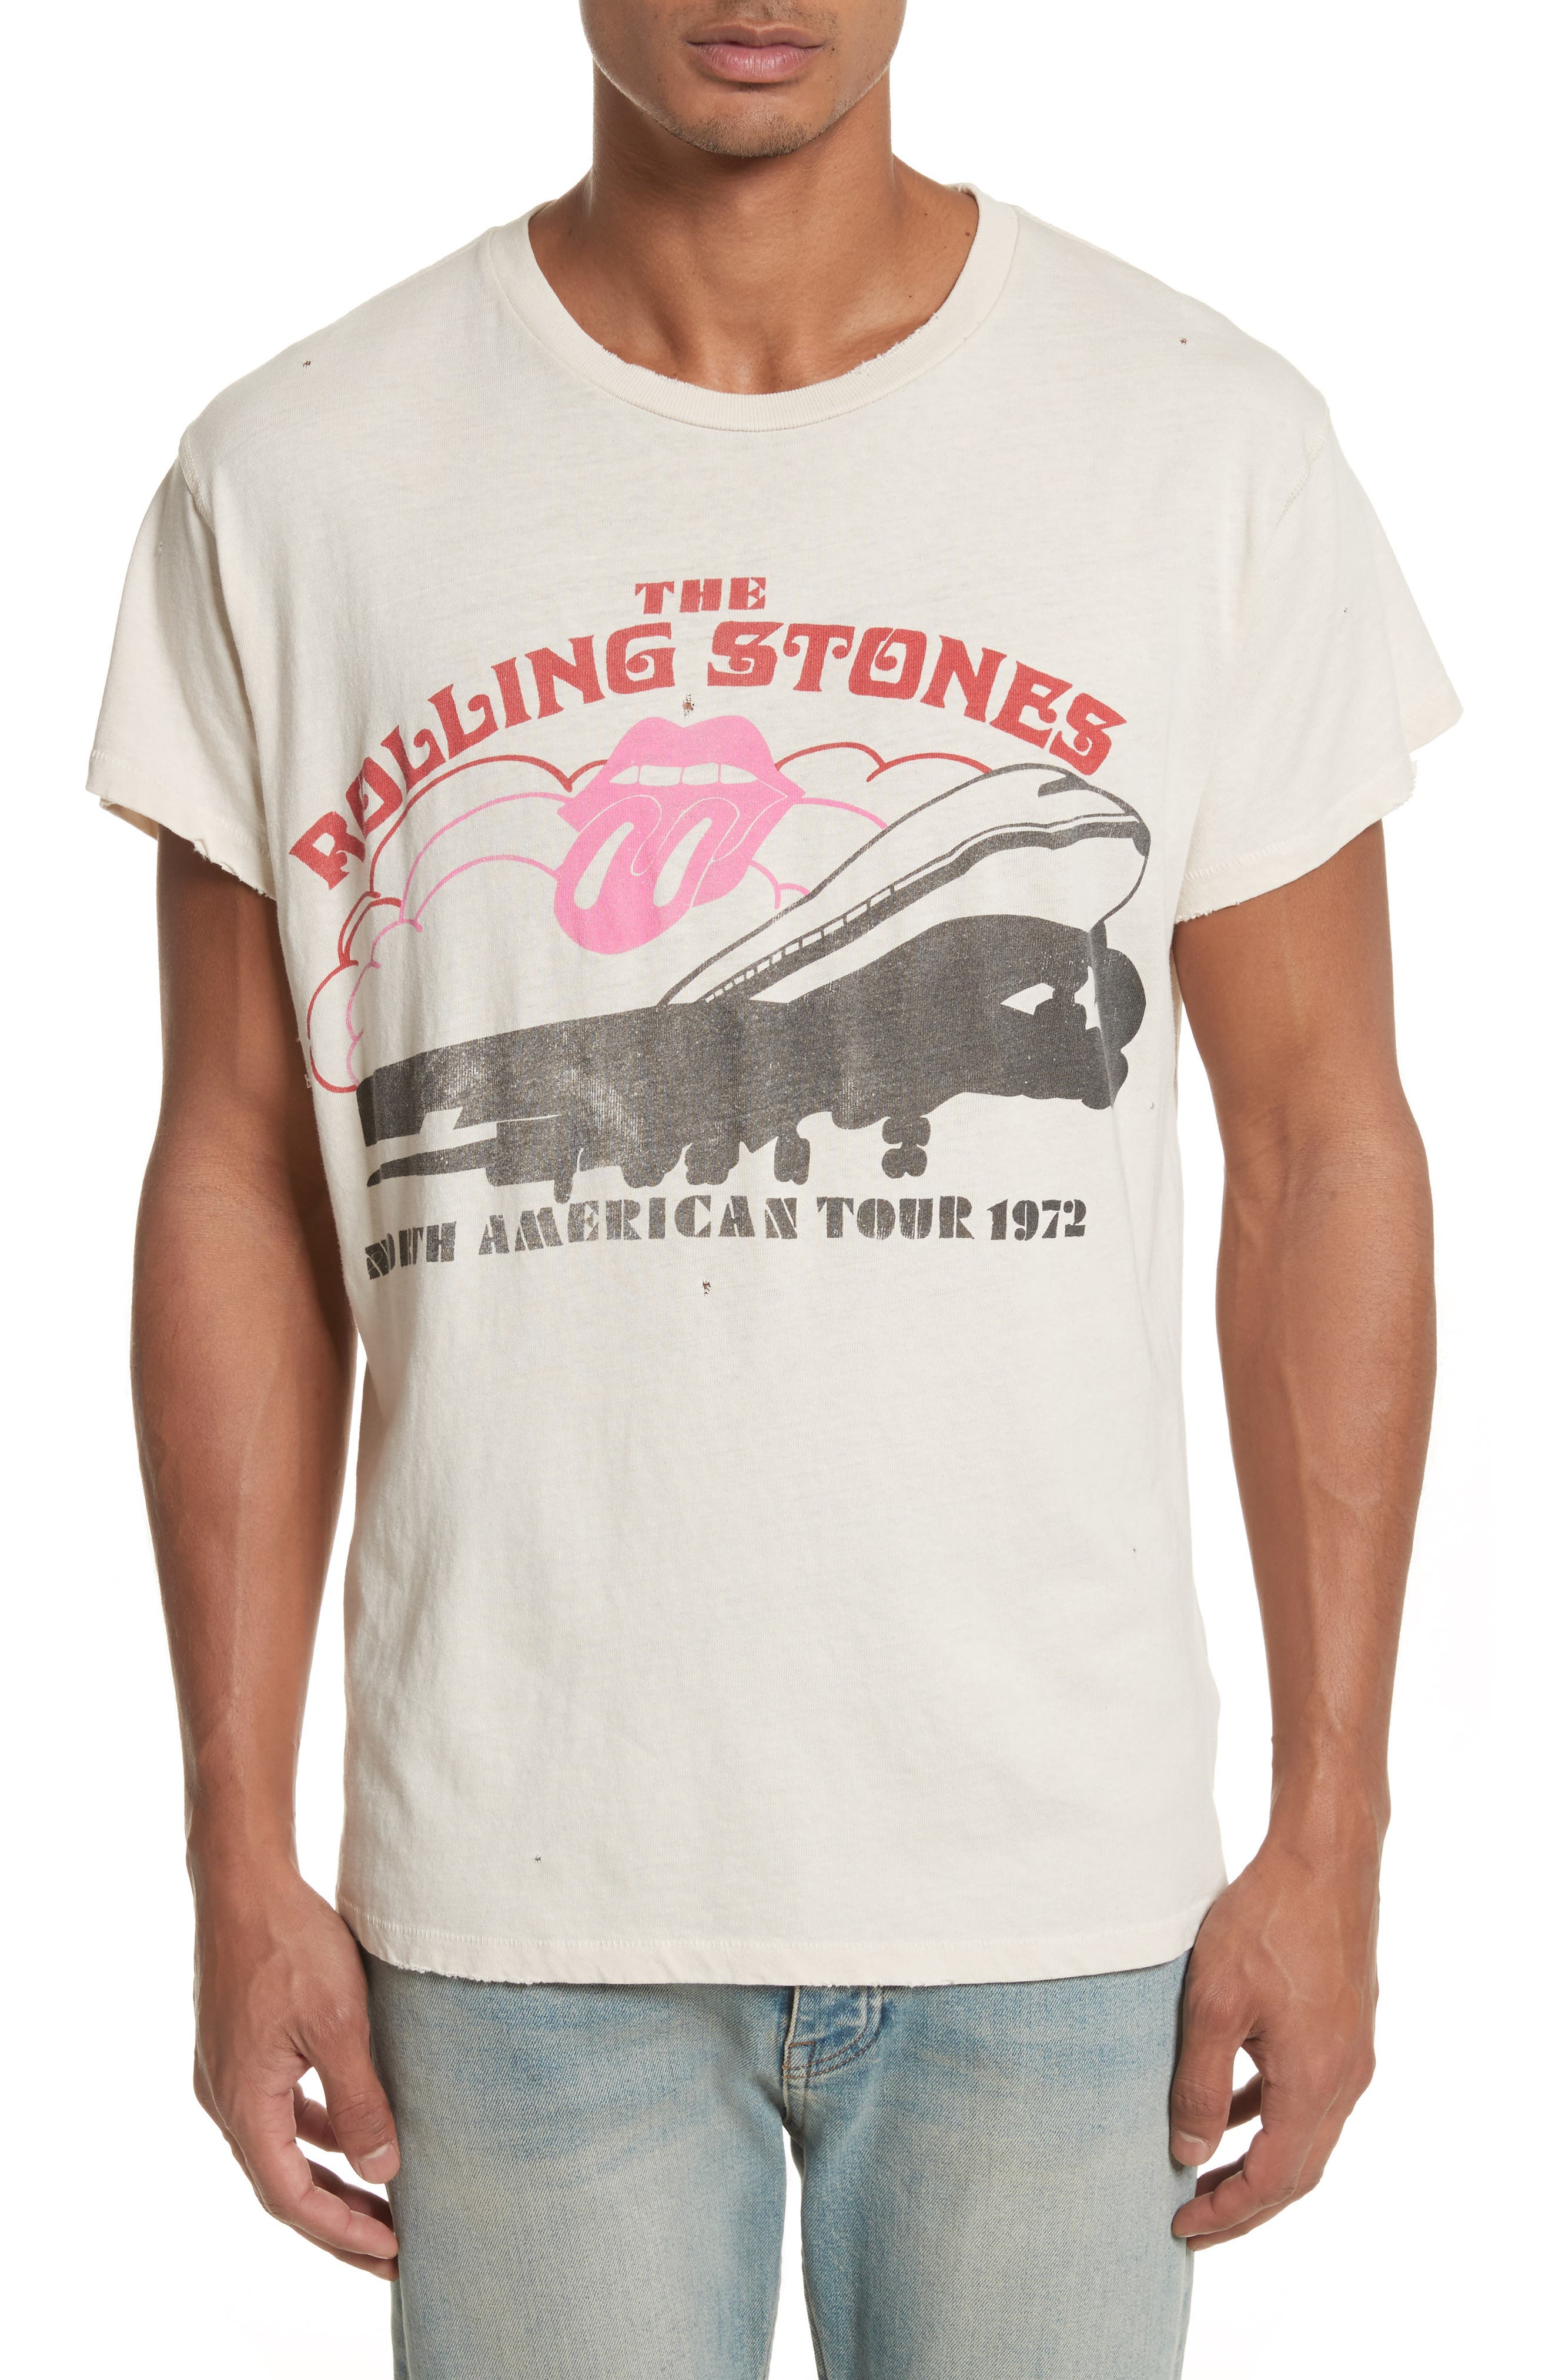 The Rolling Stones North American Tour 1972 Graphic T-Shirt,                         Main,                         color, 100